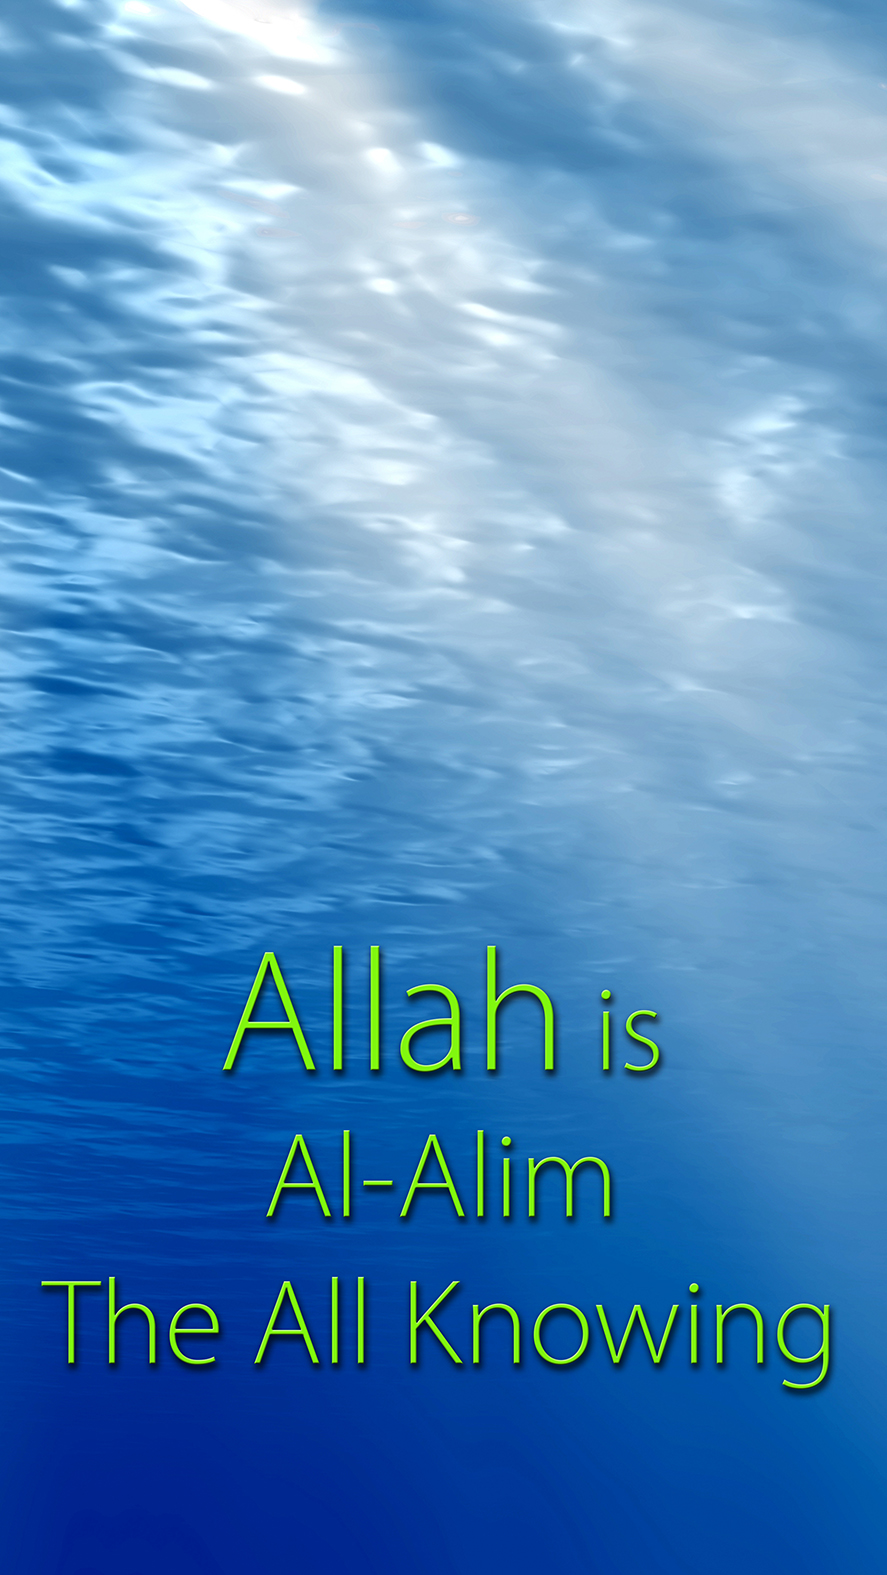 allah is all powerful and all knowing Synonyms for omnipotent at thesauruscom with free online thesaurus, antonyms, and definitions find descriptive alternatives for omnipotent.